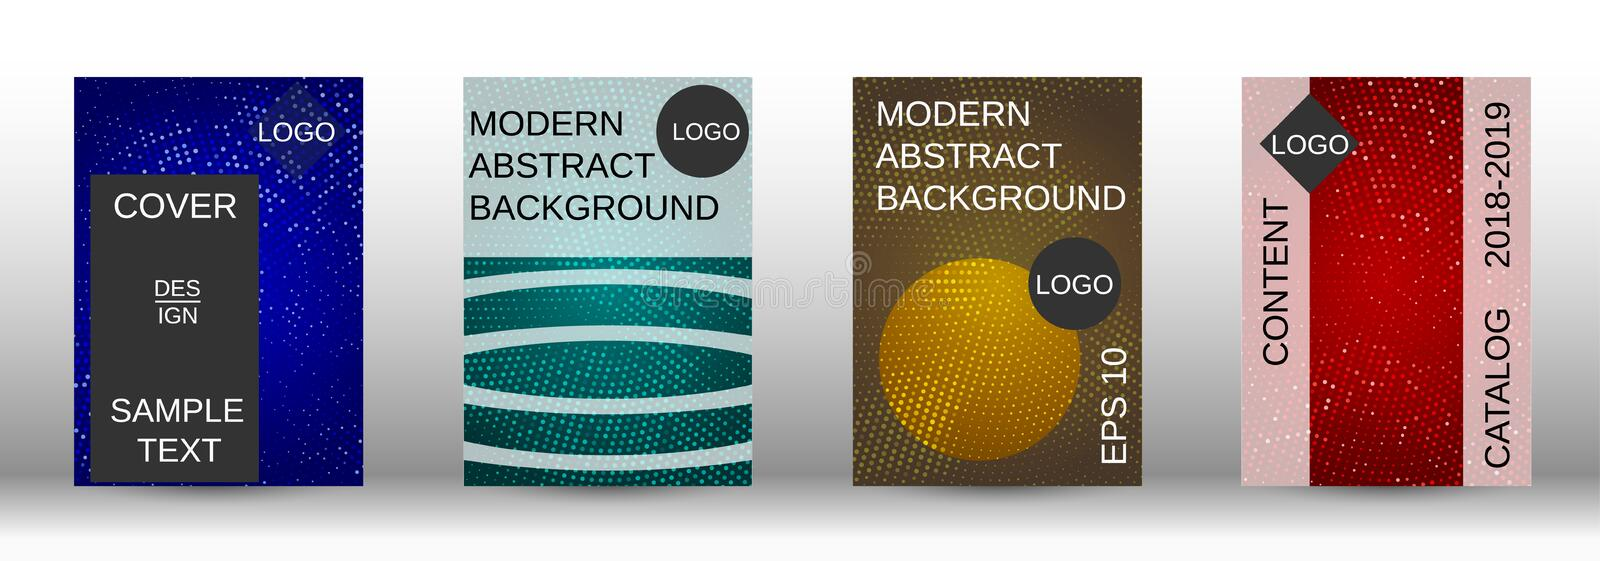 Set of modern abstract covers. stock illustration